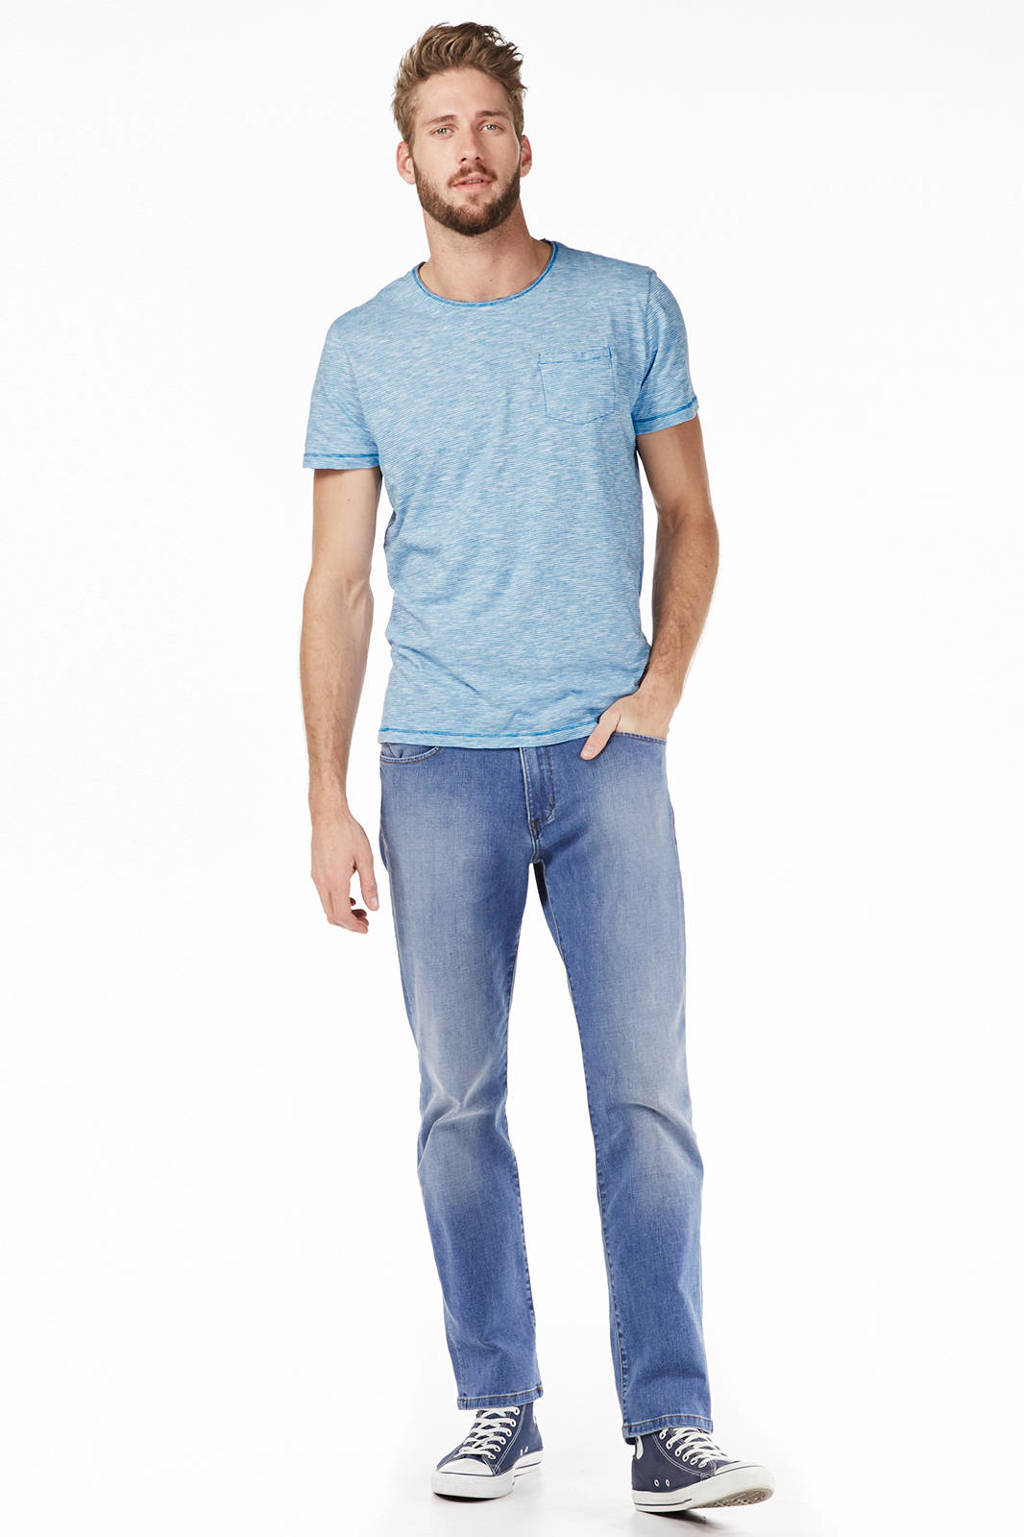 Wrangler Arizona classic straight fit jeans, Tagged Up